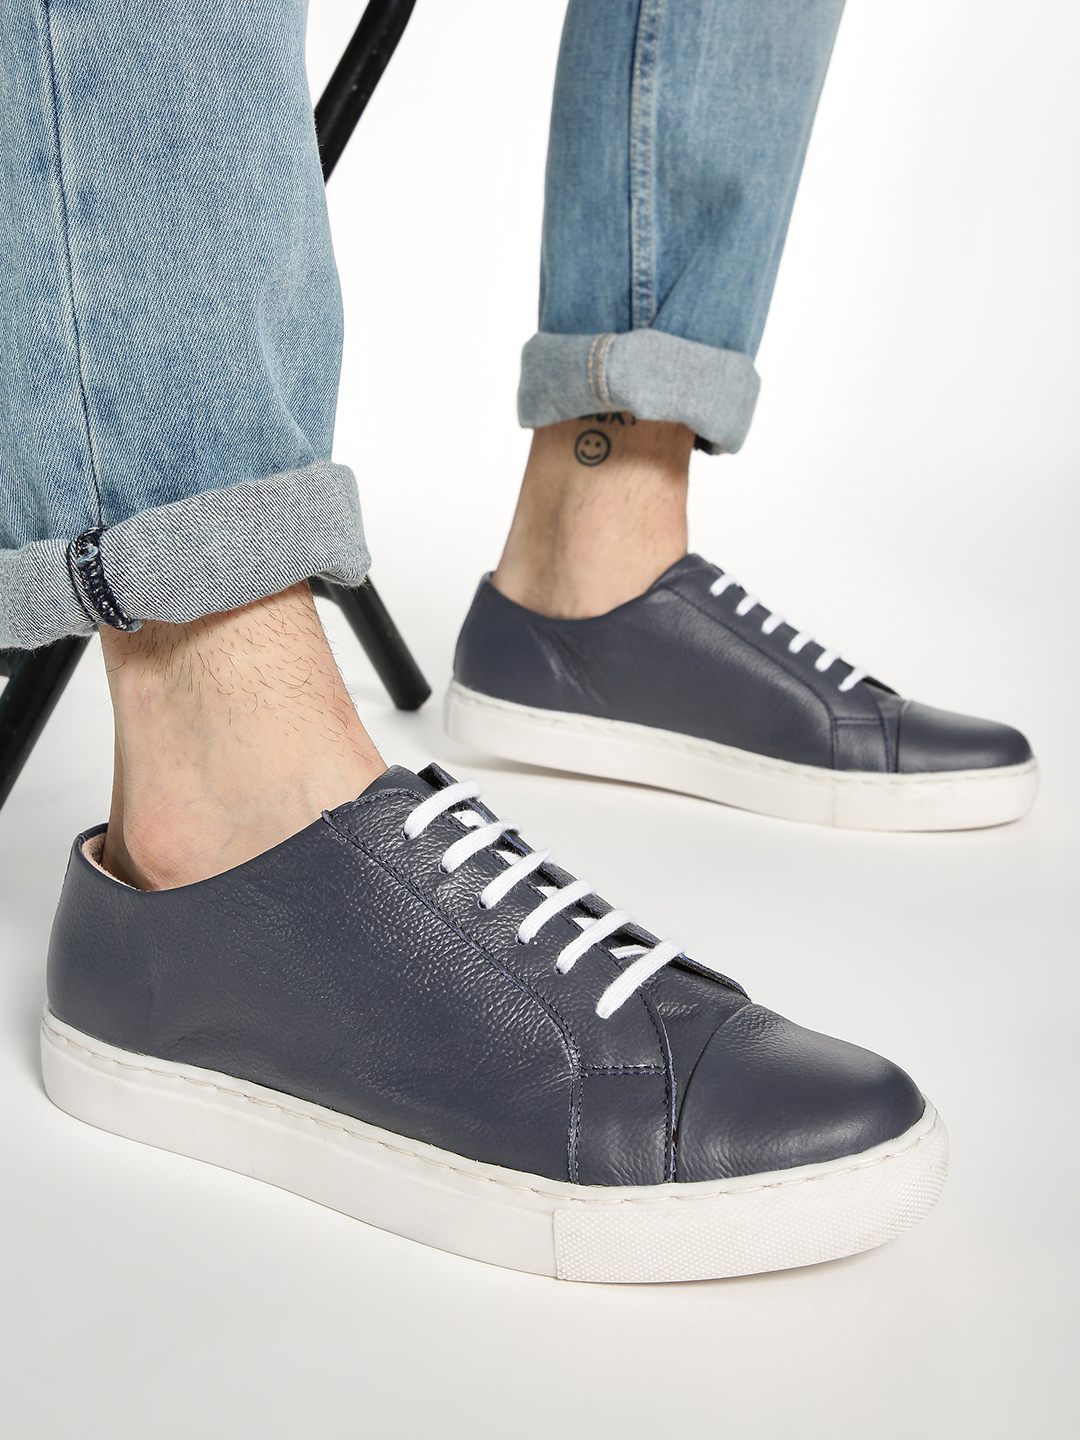 YOHO Blue Basic Lace-Up Leather Sneakers 1